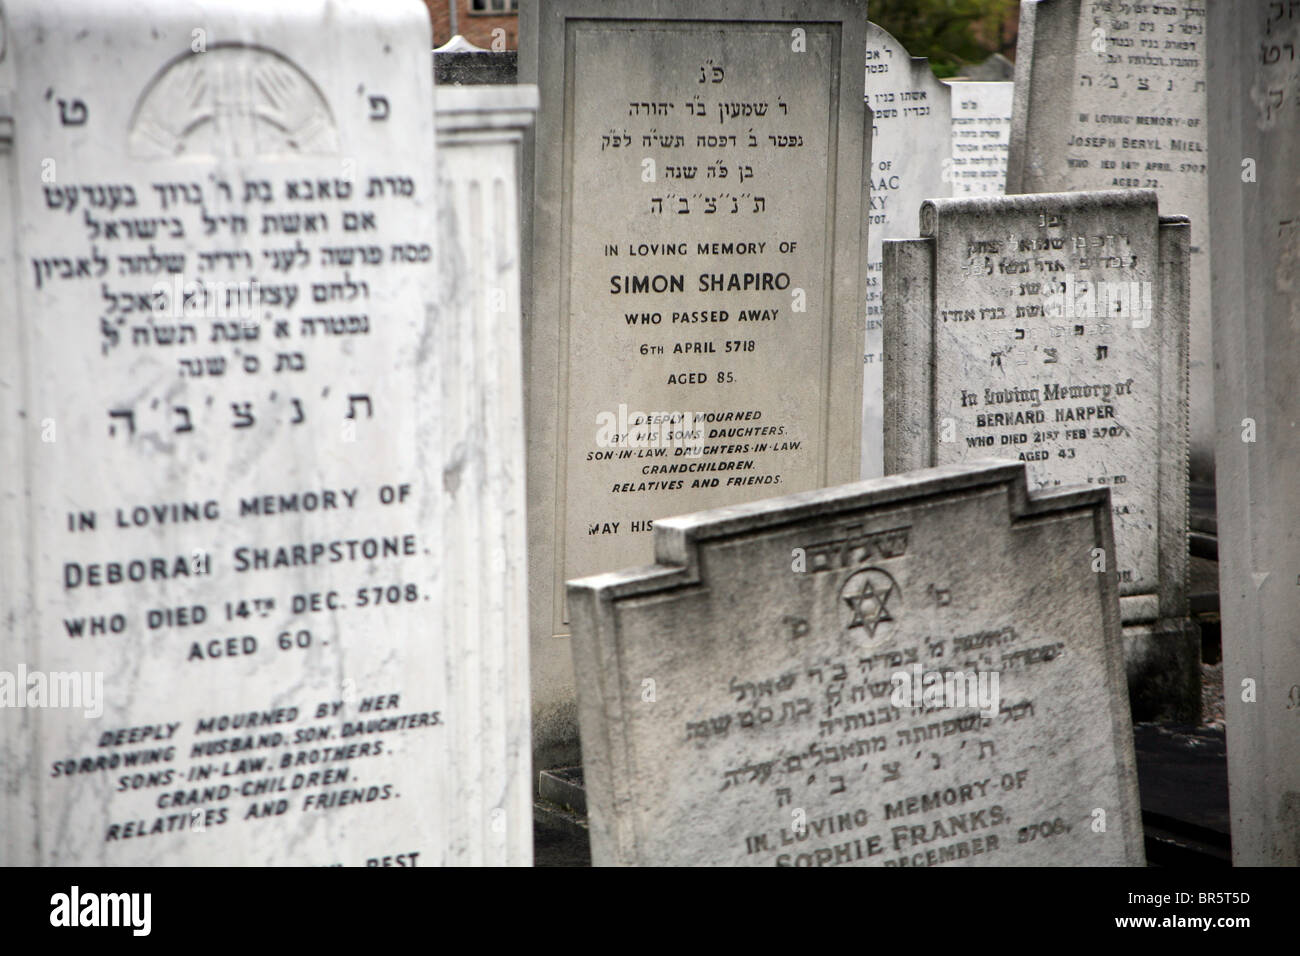 Headstones in a Orthodox Jewish cemetery in Enfield, North London. - Stock Image